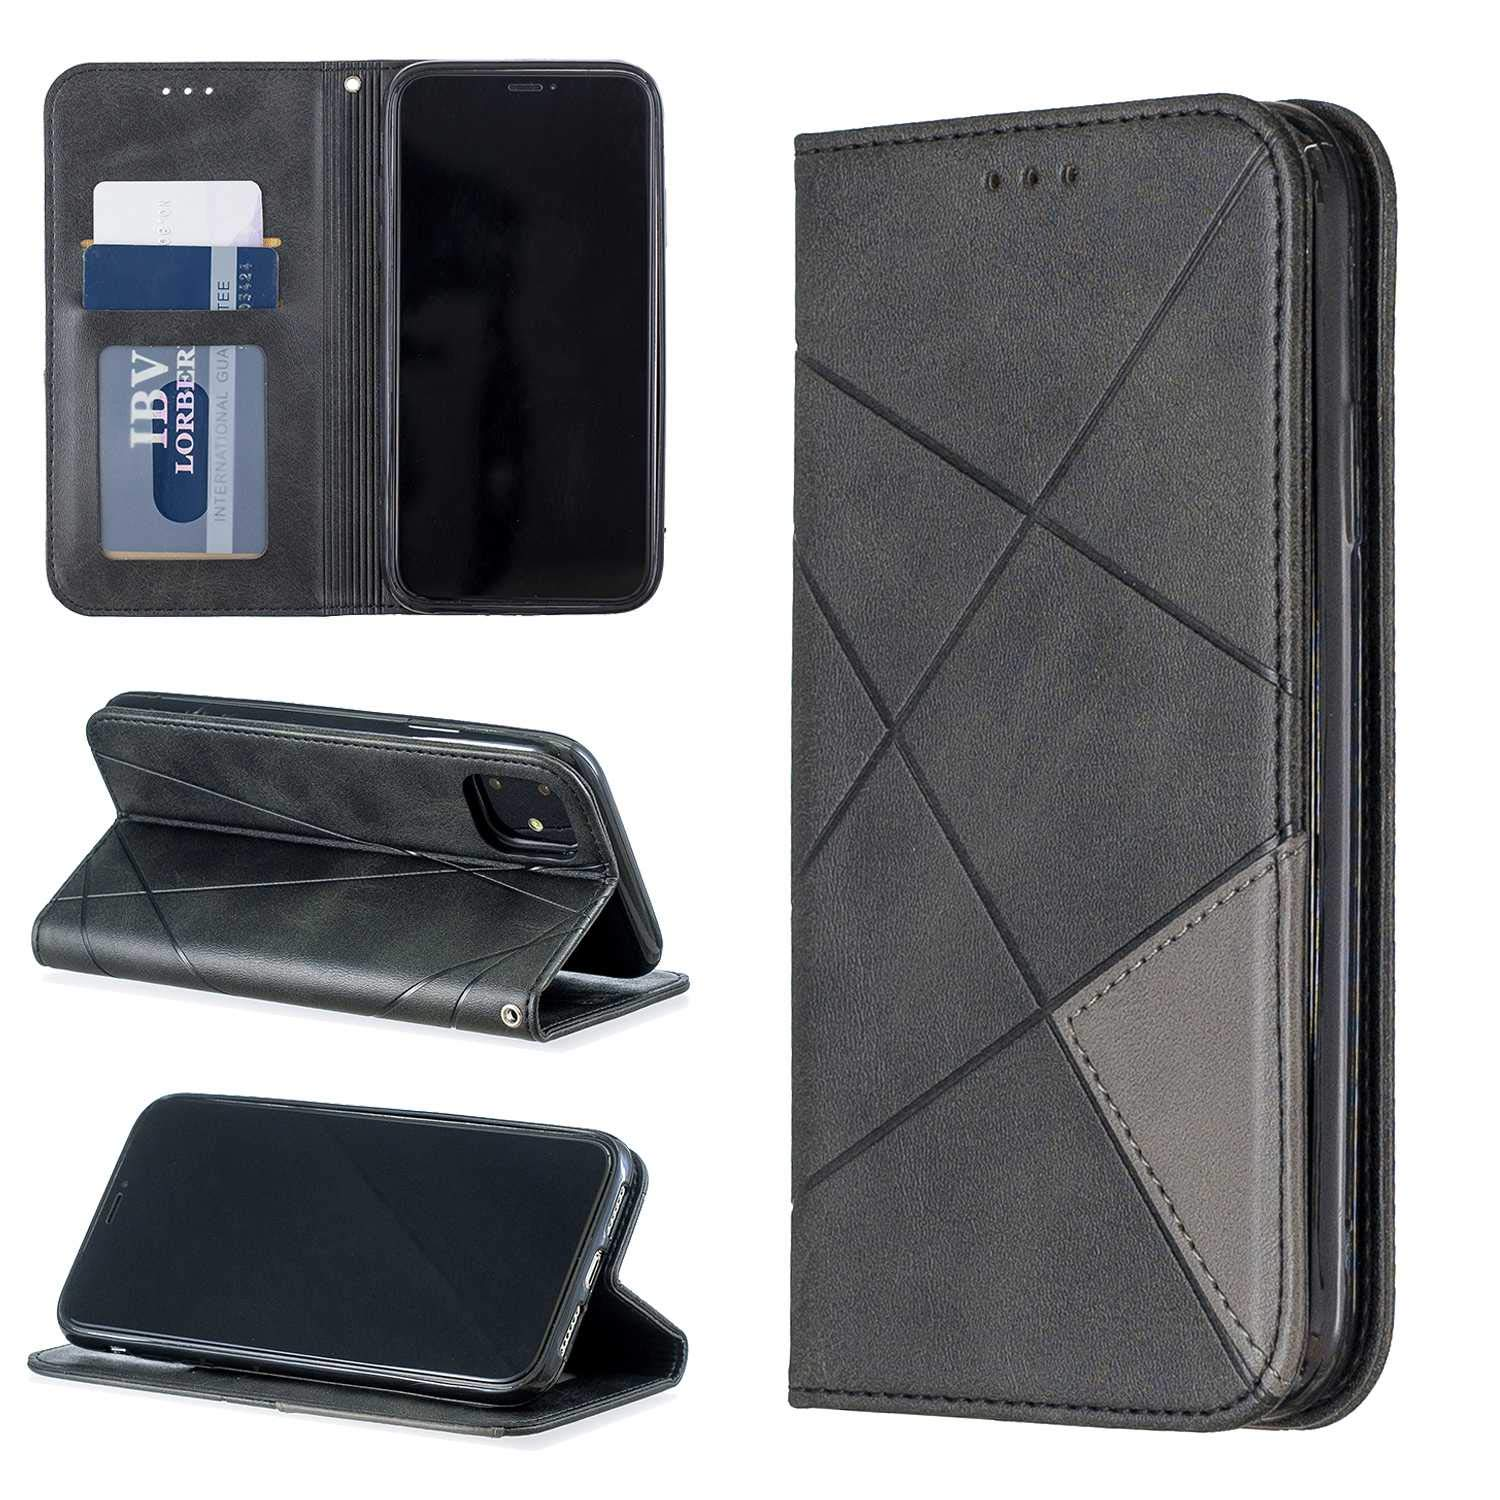 Premium Case for Apple iPhone 6 Plus//iPhone 6S Plus Gray Built in Card Slots and Cash Pocket CUSKING Magnetic Wallet Case with Magnetic Closure